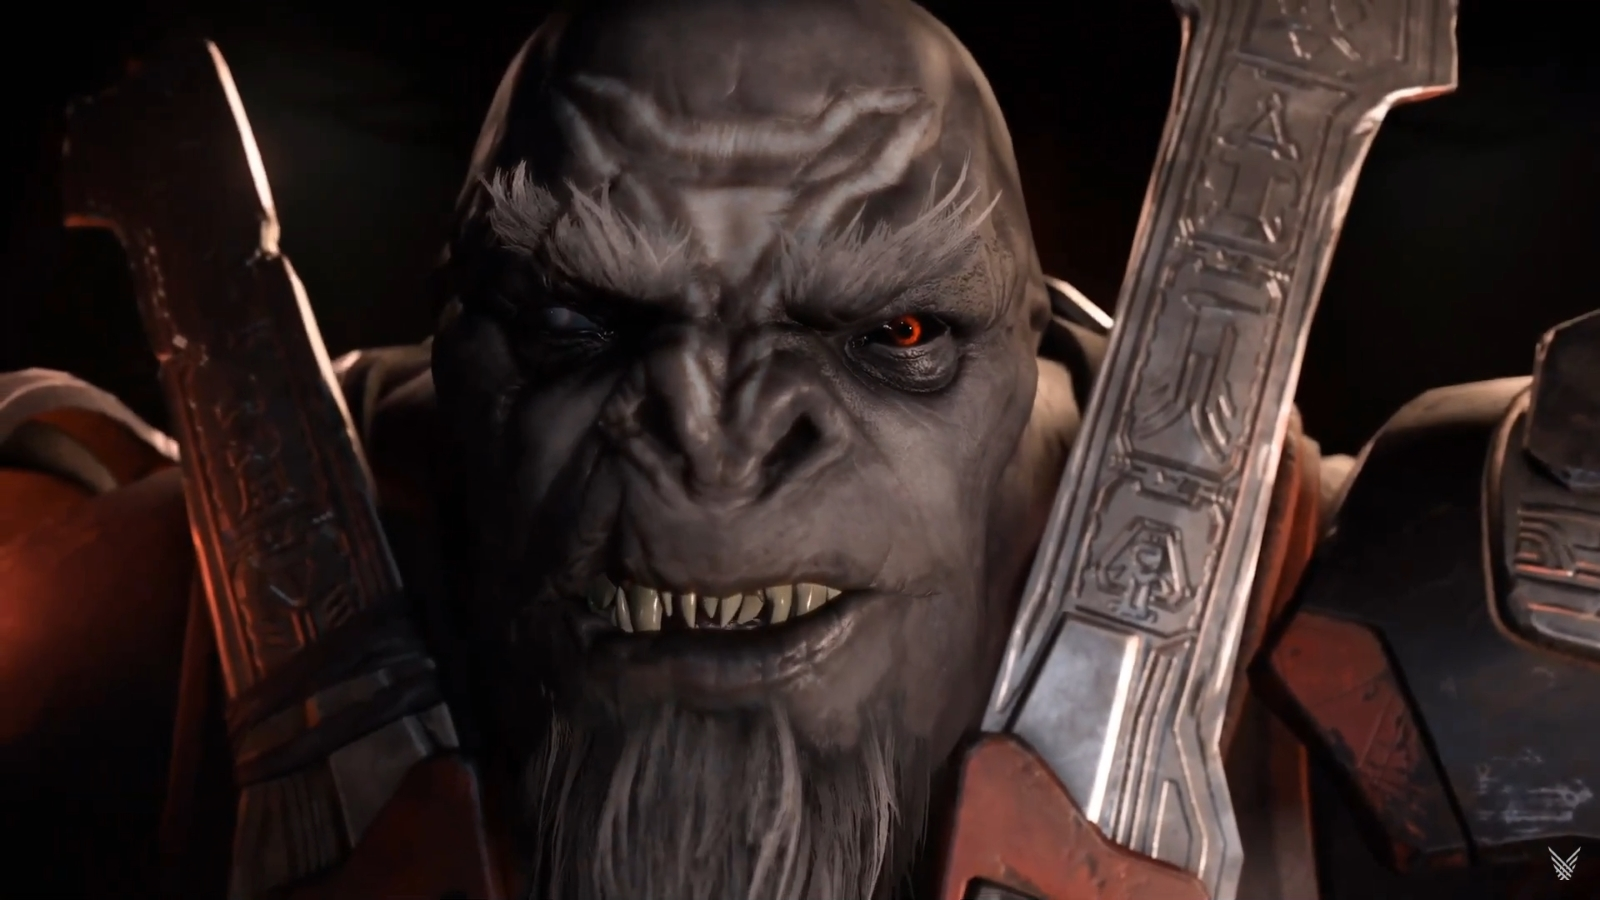 Escharum, a large aggressive alien who resembles a gorilla, looks intently into the camera in close up. He has a long grey chinbeard, and red eyes.